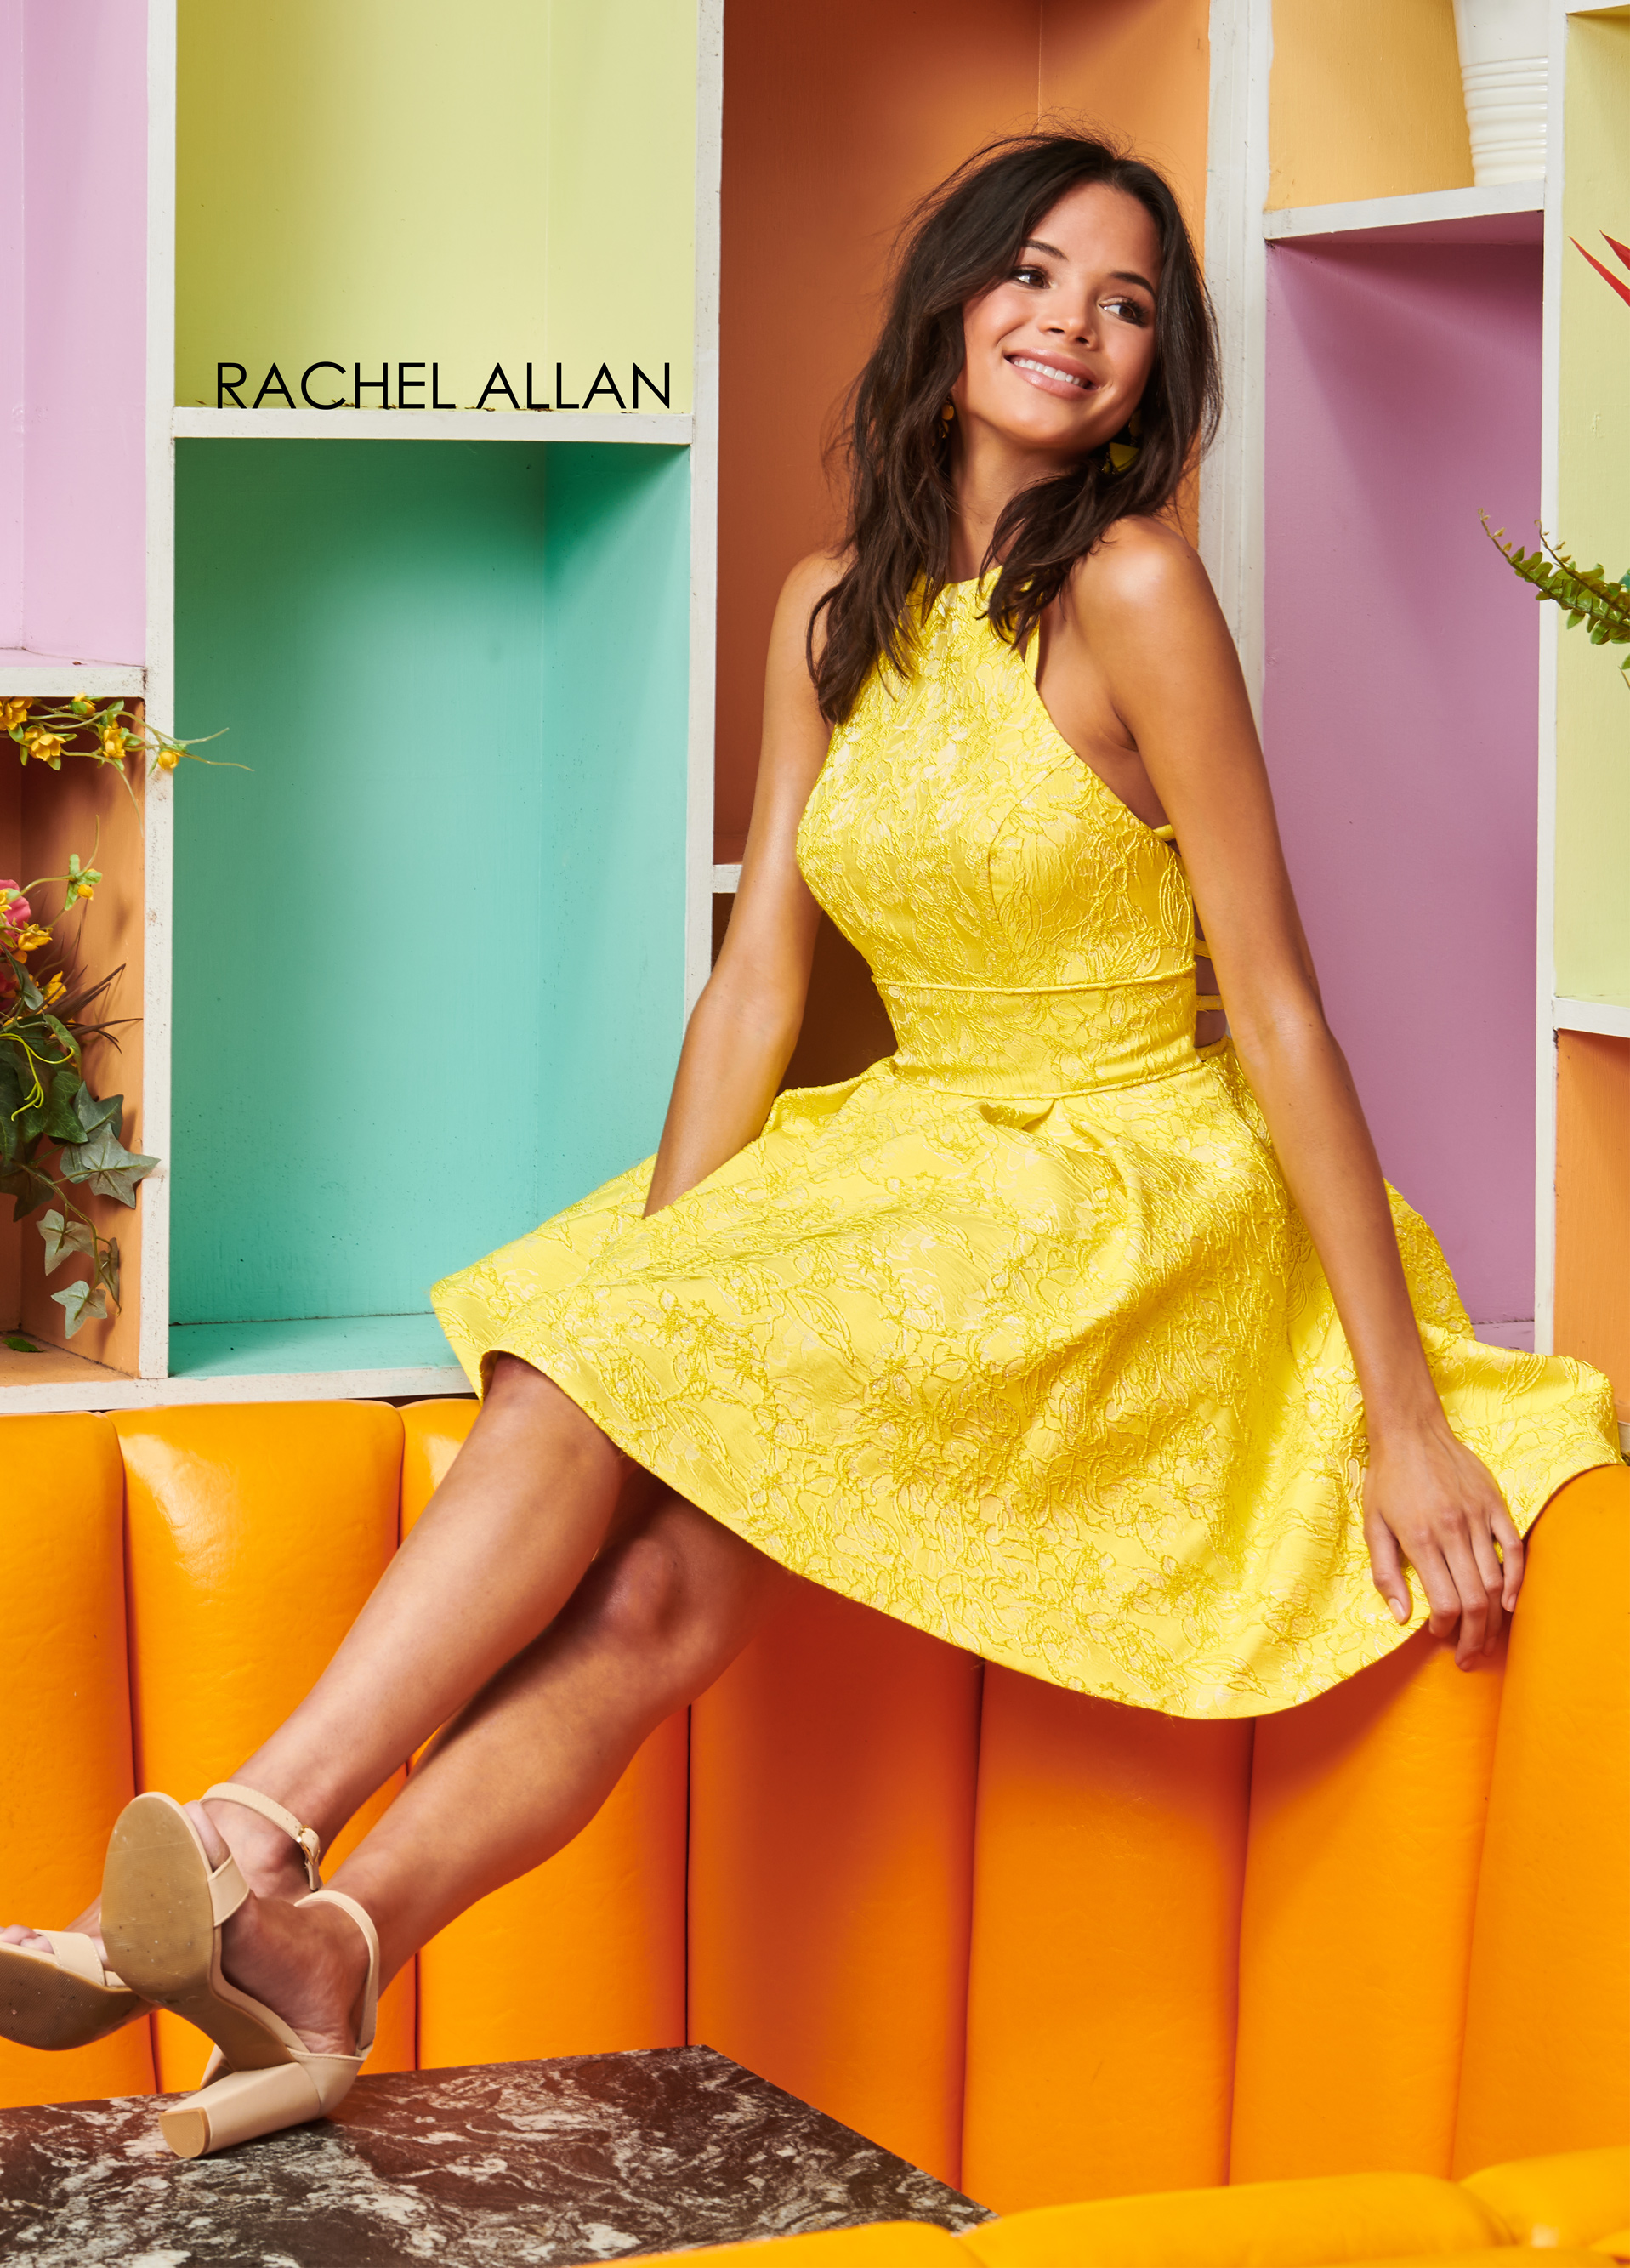 Halter A-Line Homecoming Dresses in Yellow Color